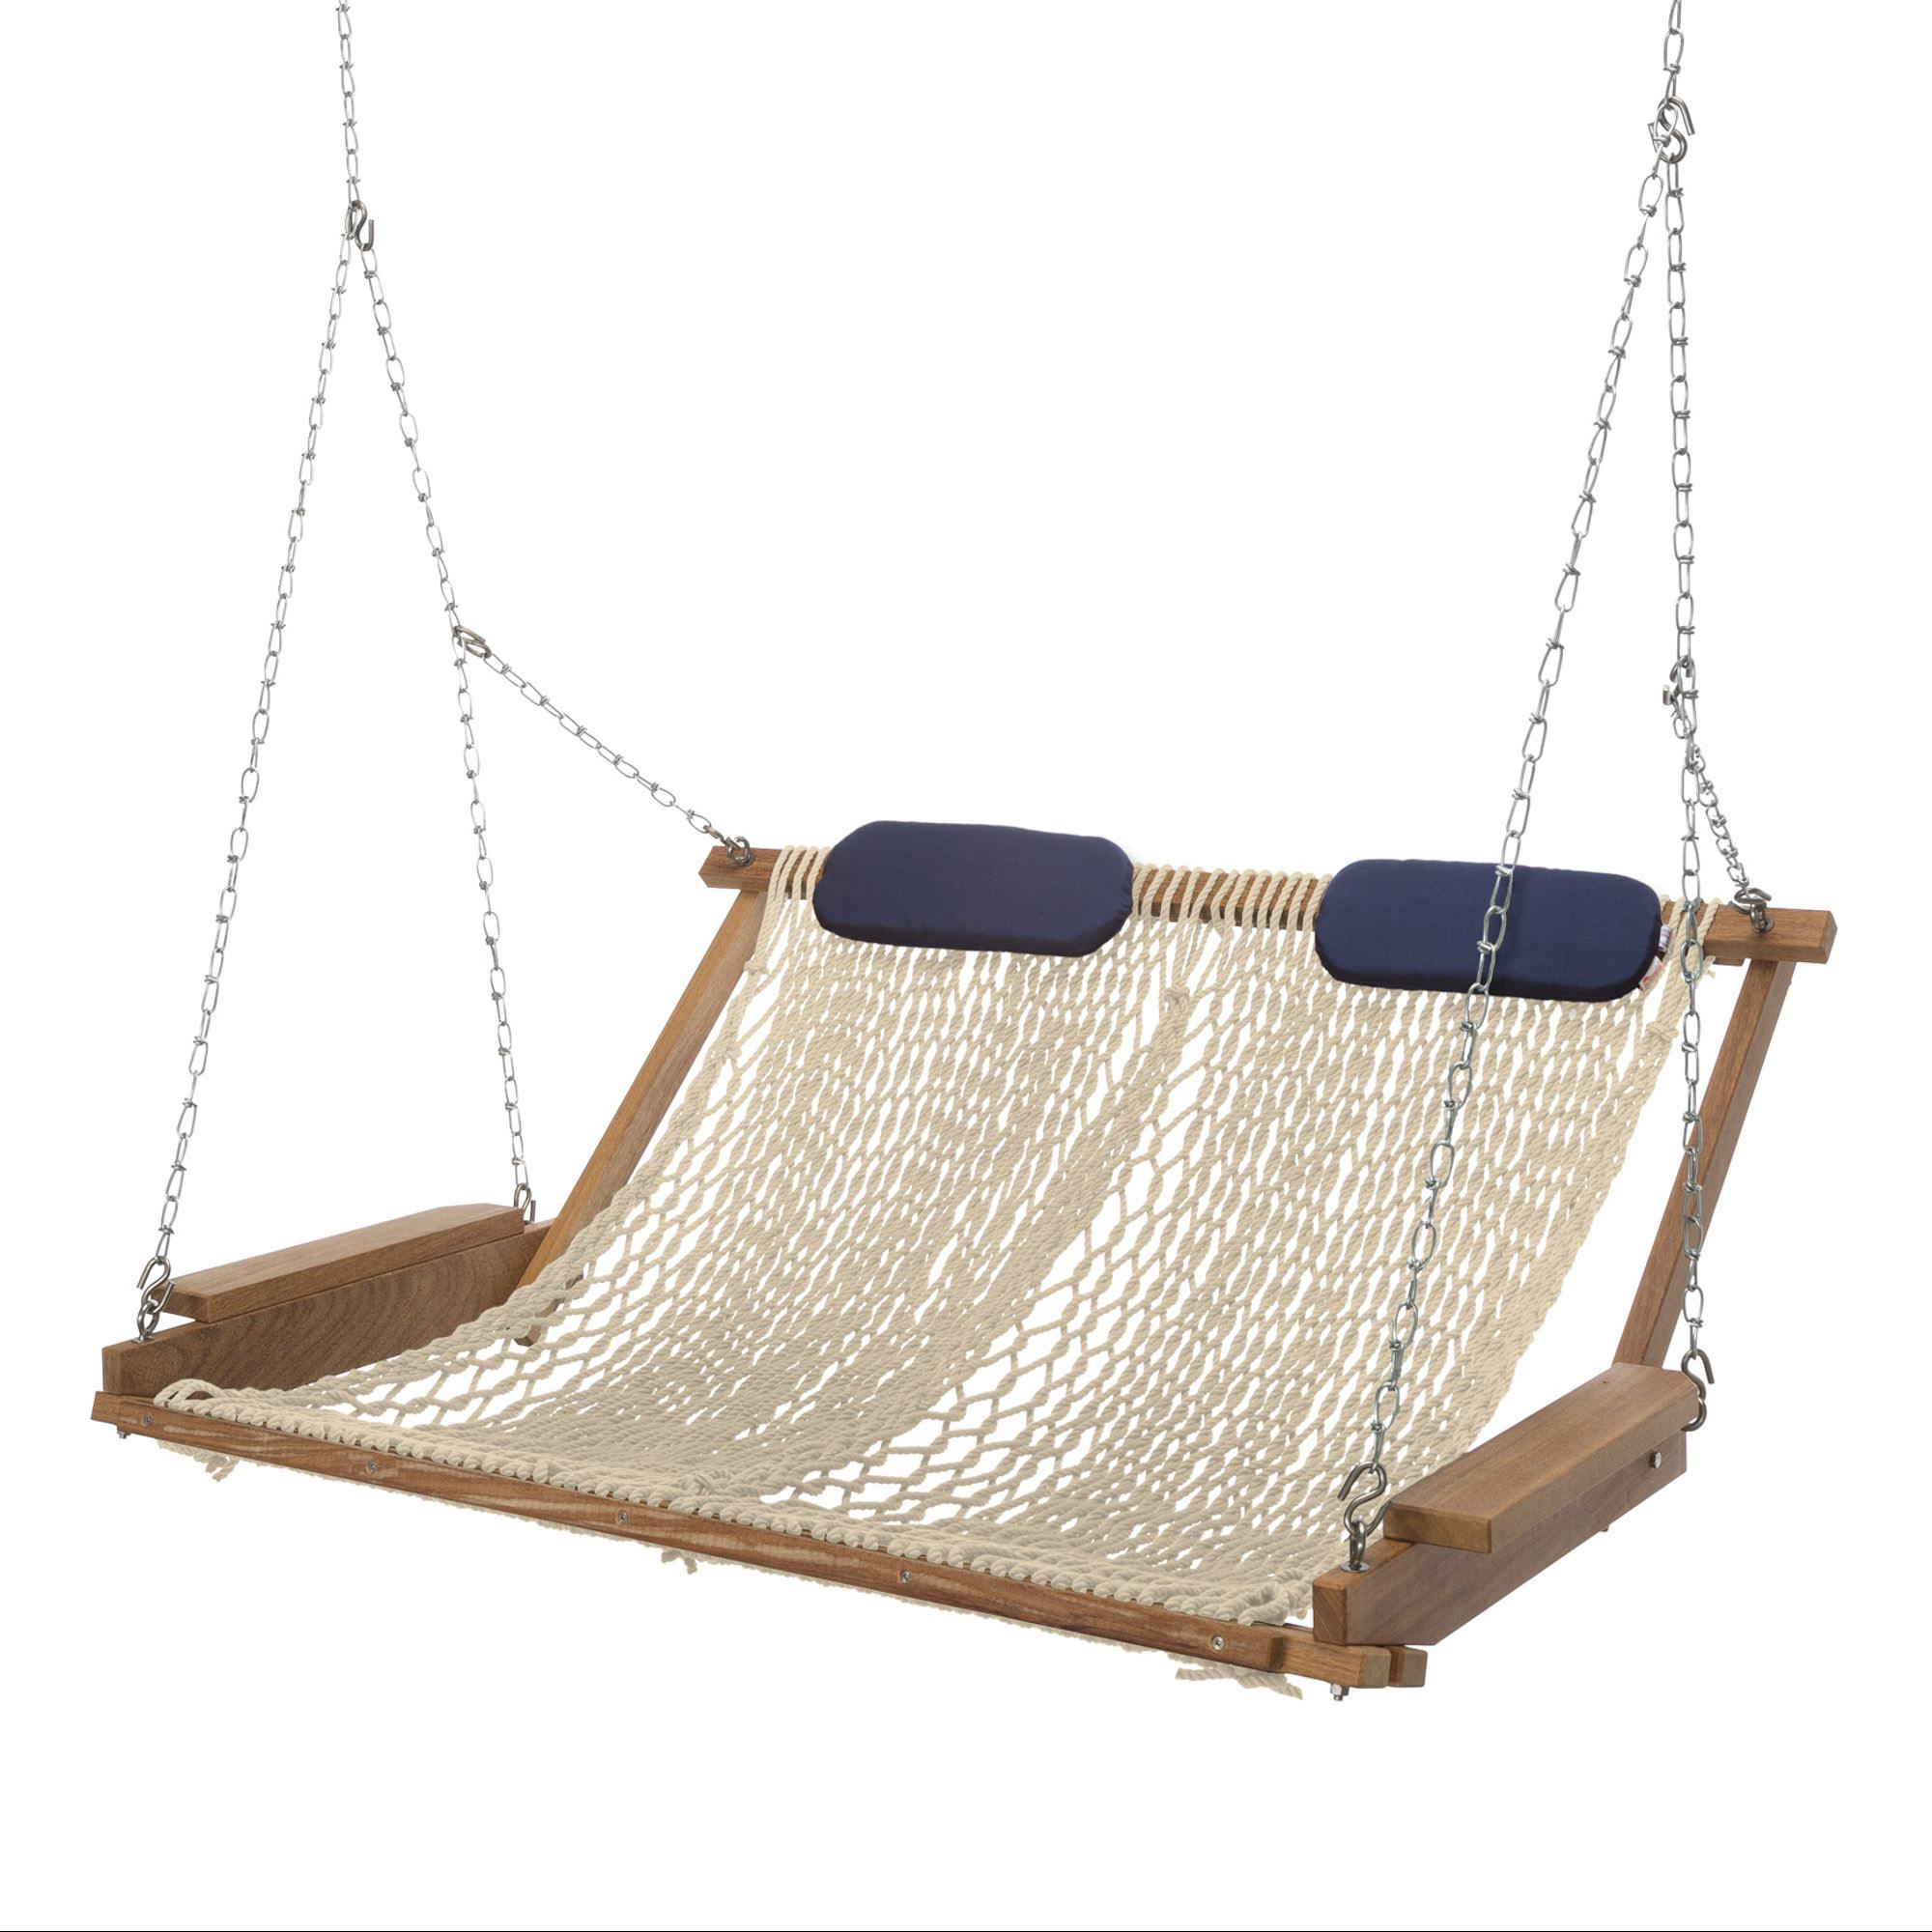 hammock chair instructions unfinished wooden kits cumaru deluxe rope porch swing nags head hammocks